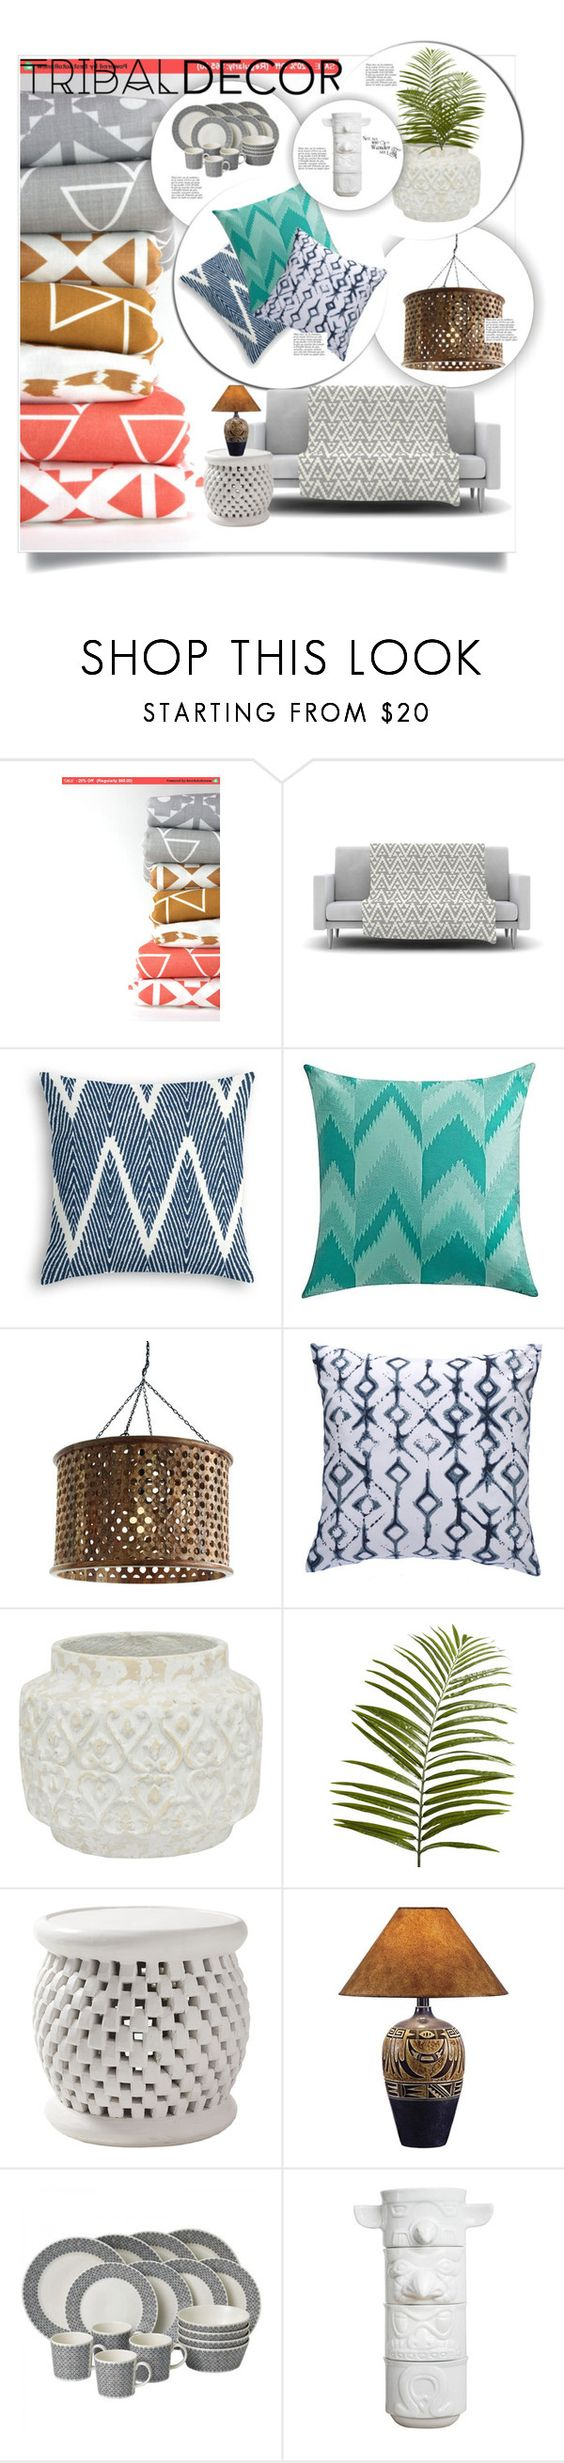 """Tribal Decor"" by nata0 ❤ liked on Polyvore featuring interior, interiors, interior design, home, home decor, interior decorating, Arteriors, Dot & Bo, Pier 1 Imports and Serena & Lily"